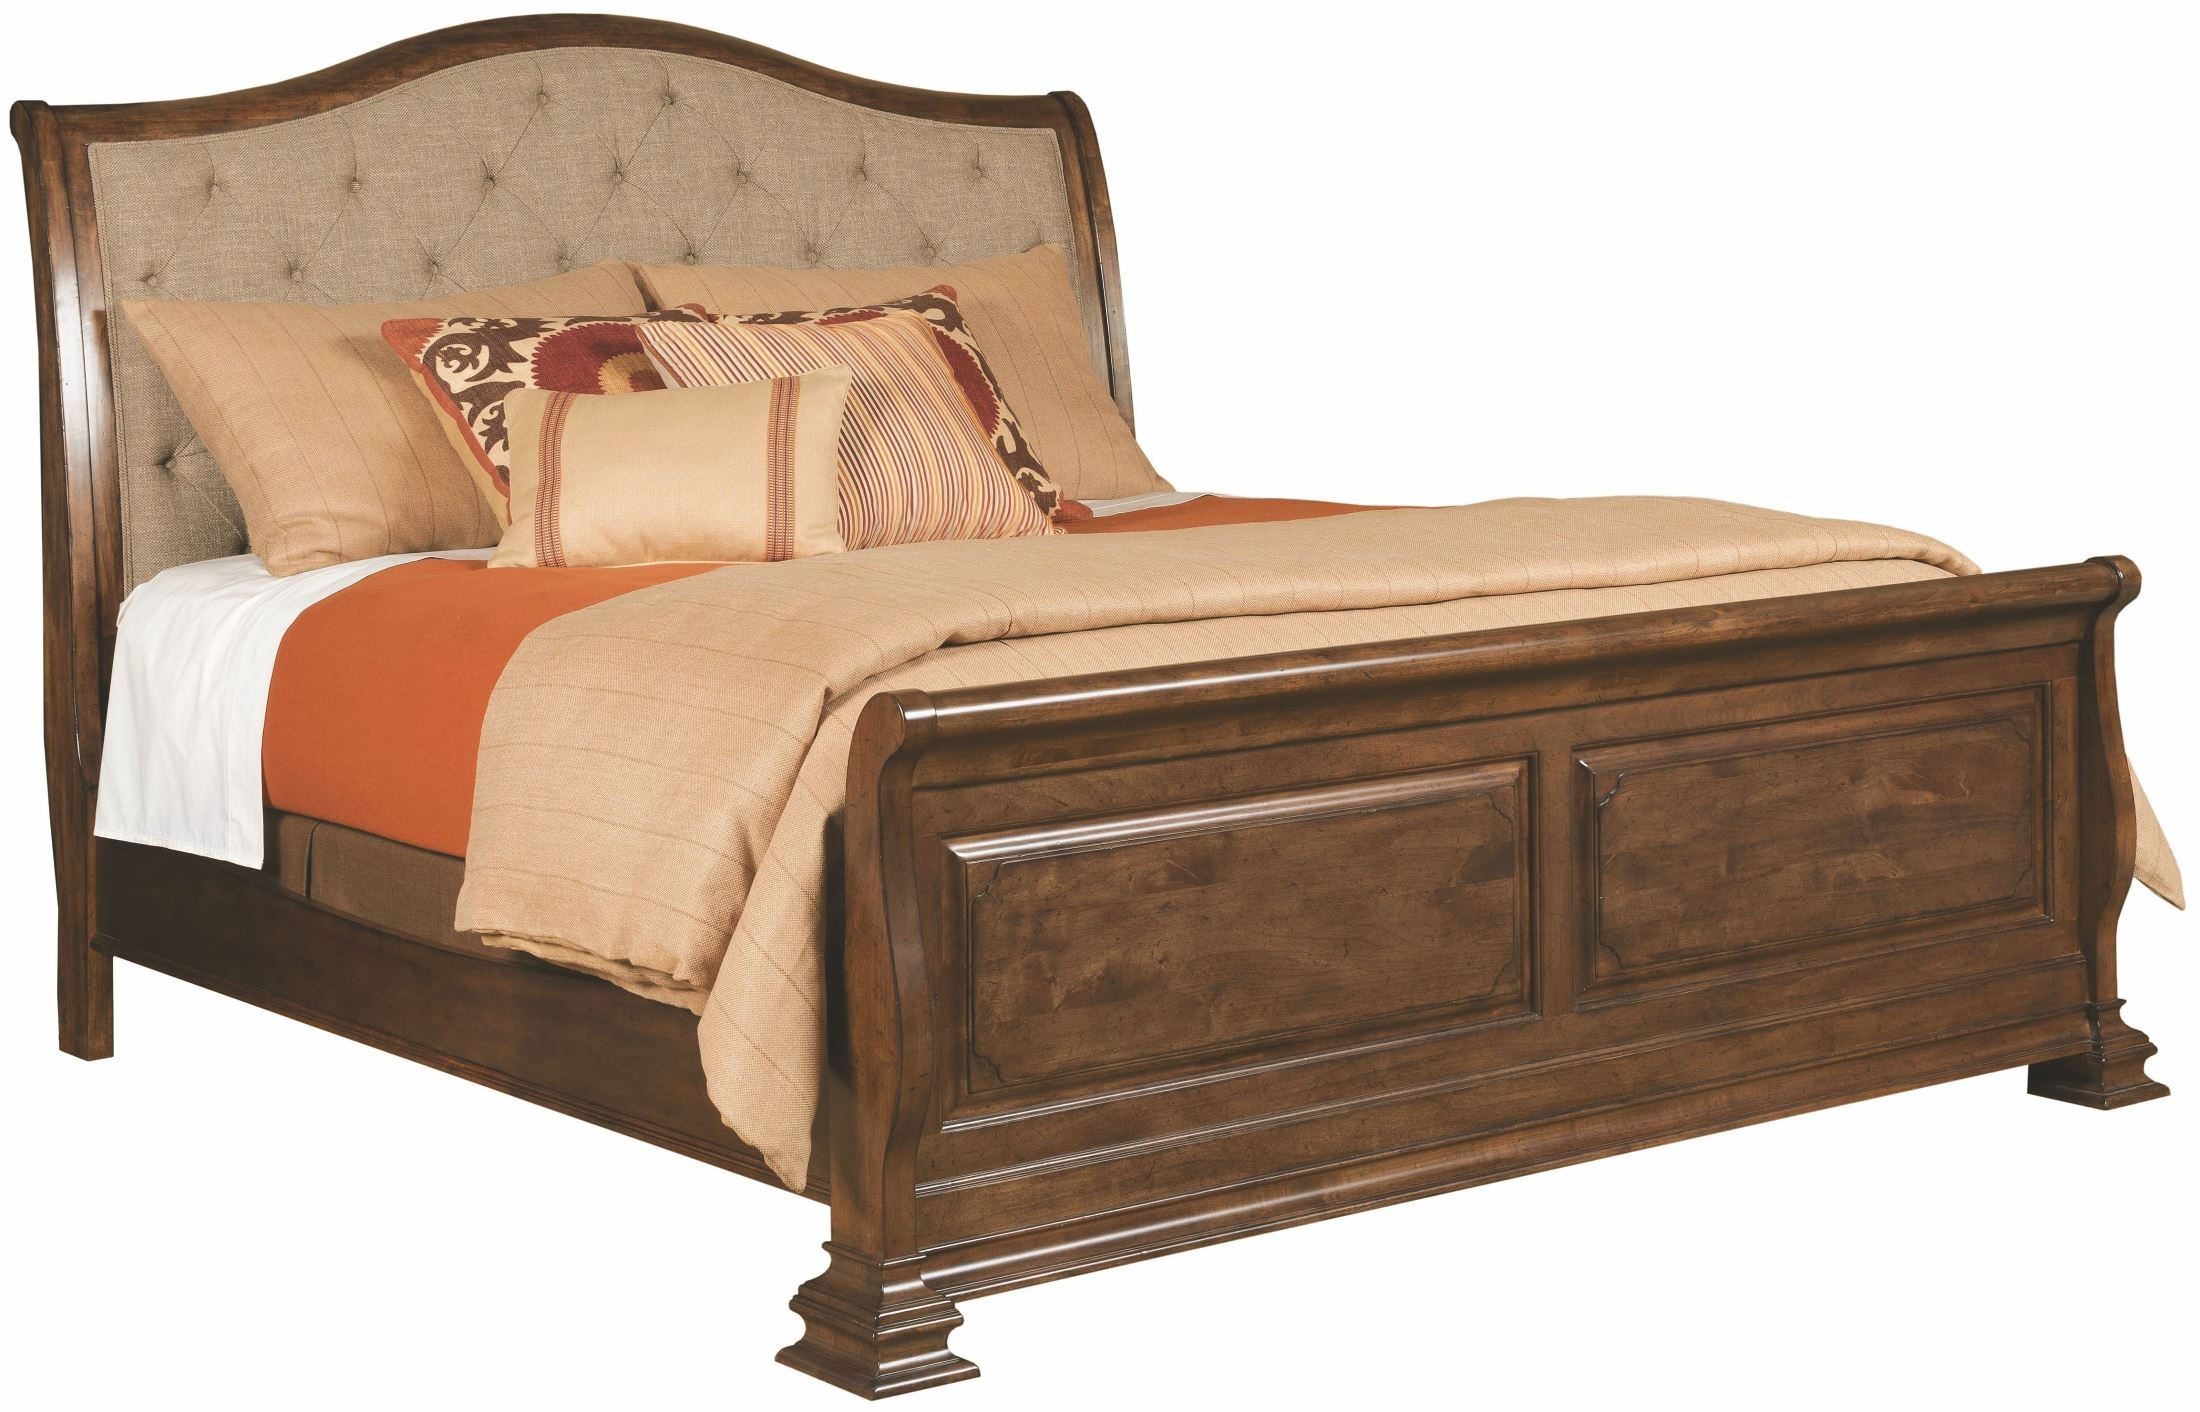 Portolone Herringbone King Sleigh Bed 95 152p Kincaid